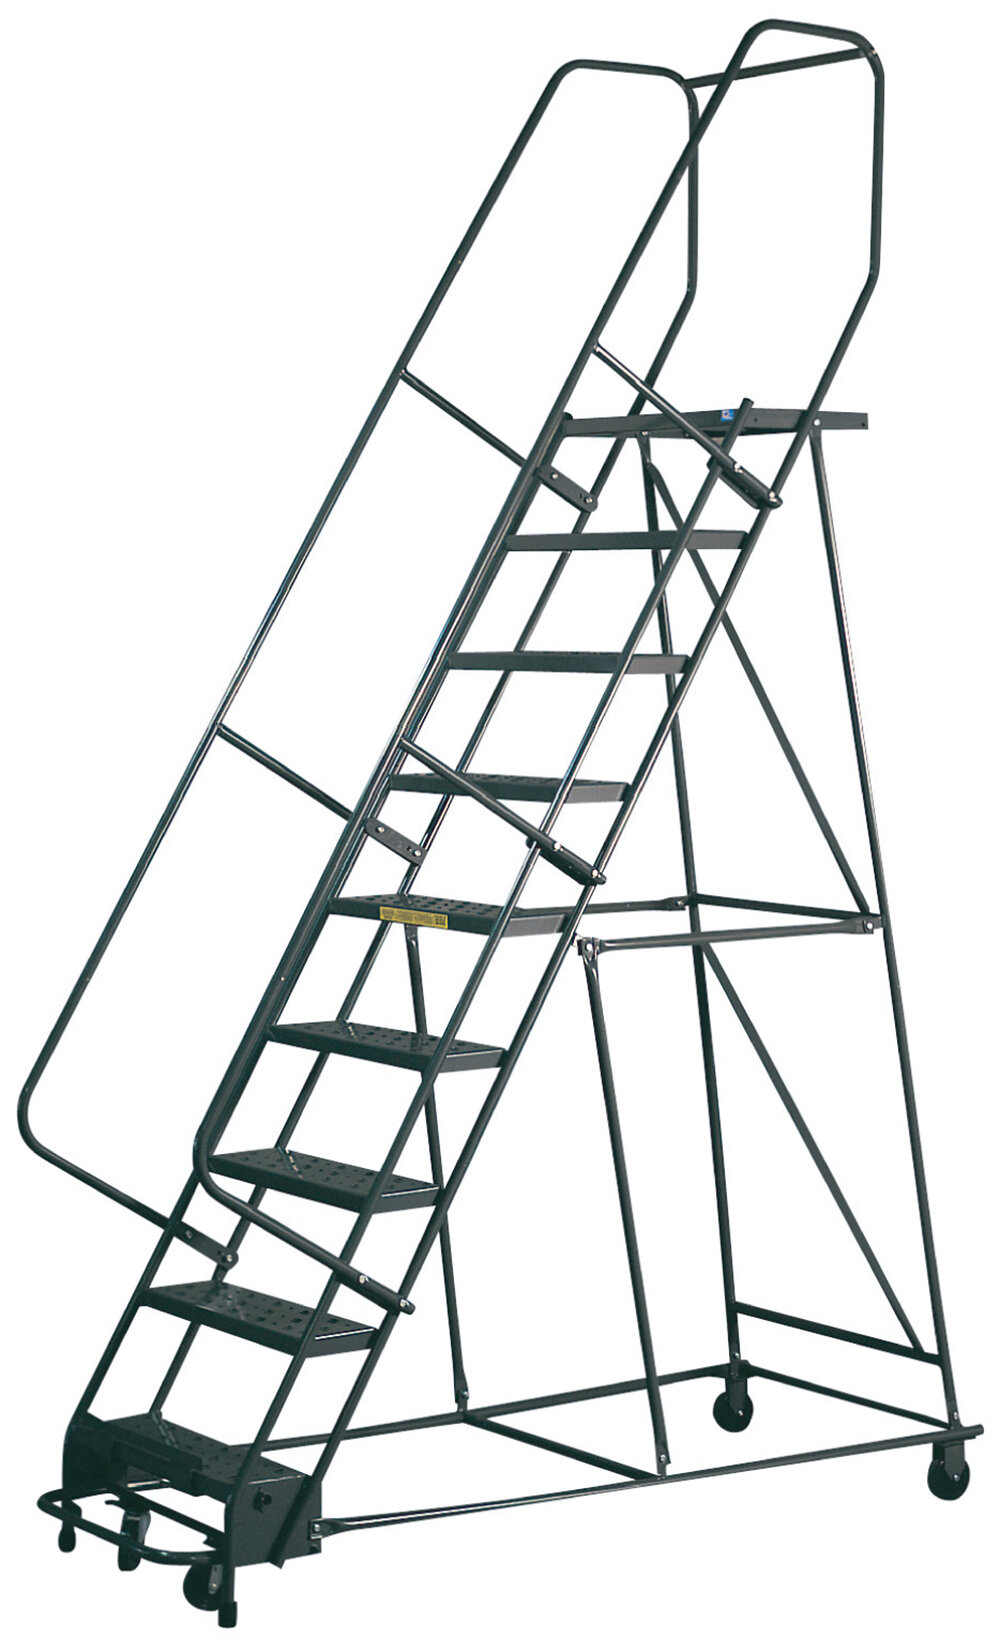 Spg Gillis 9 5 Ft Steel Rolling Ladder With 300 Lb Load Capacity Wayfair